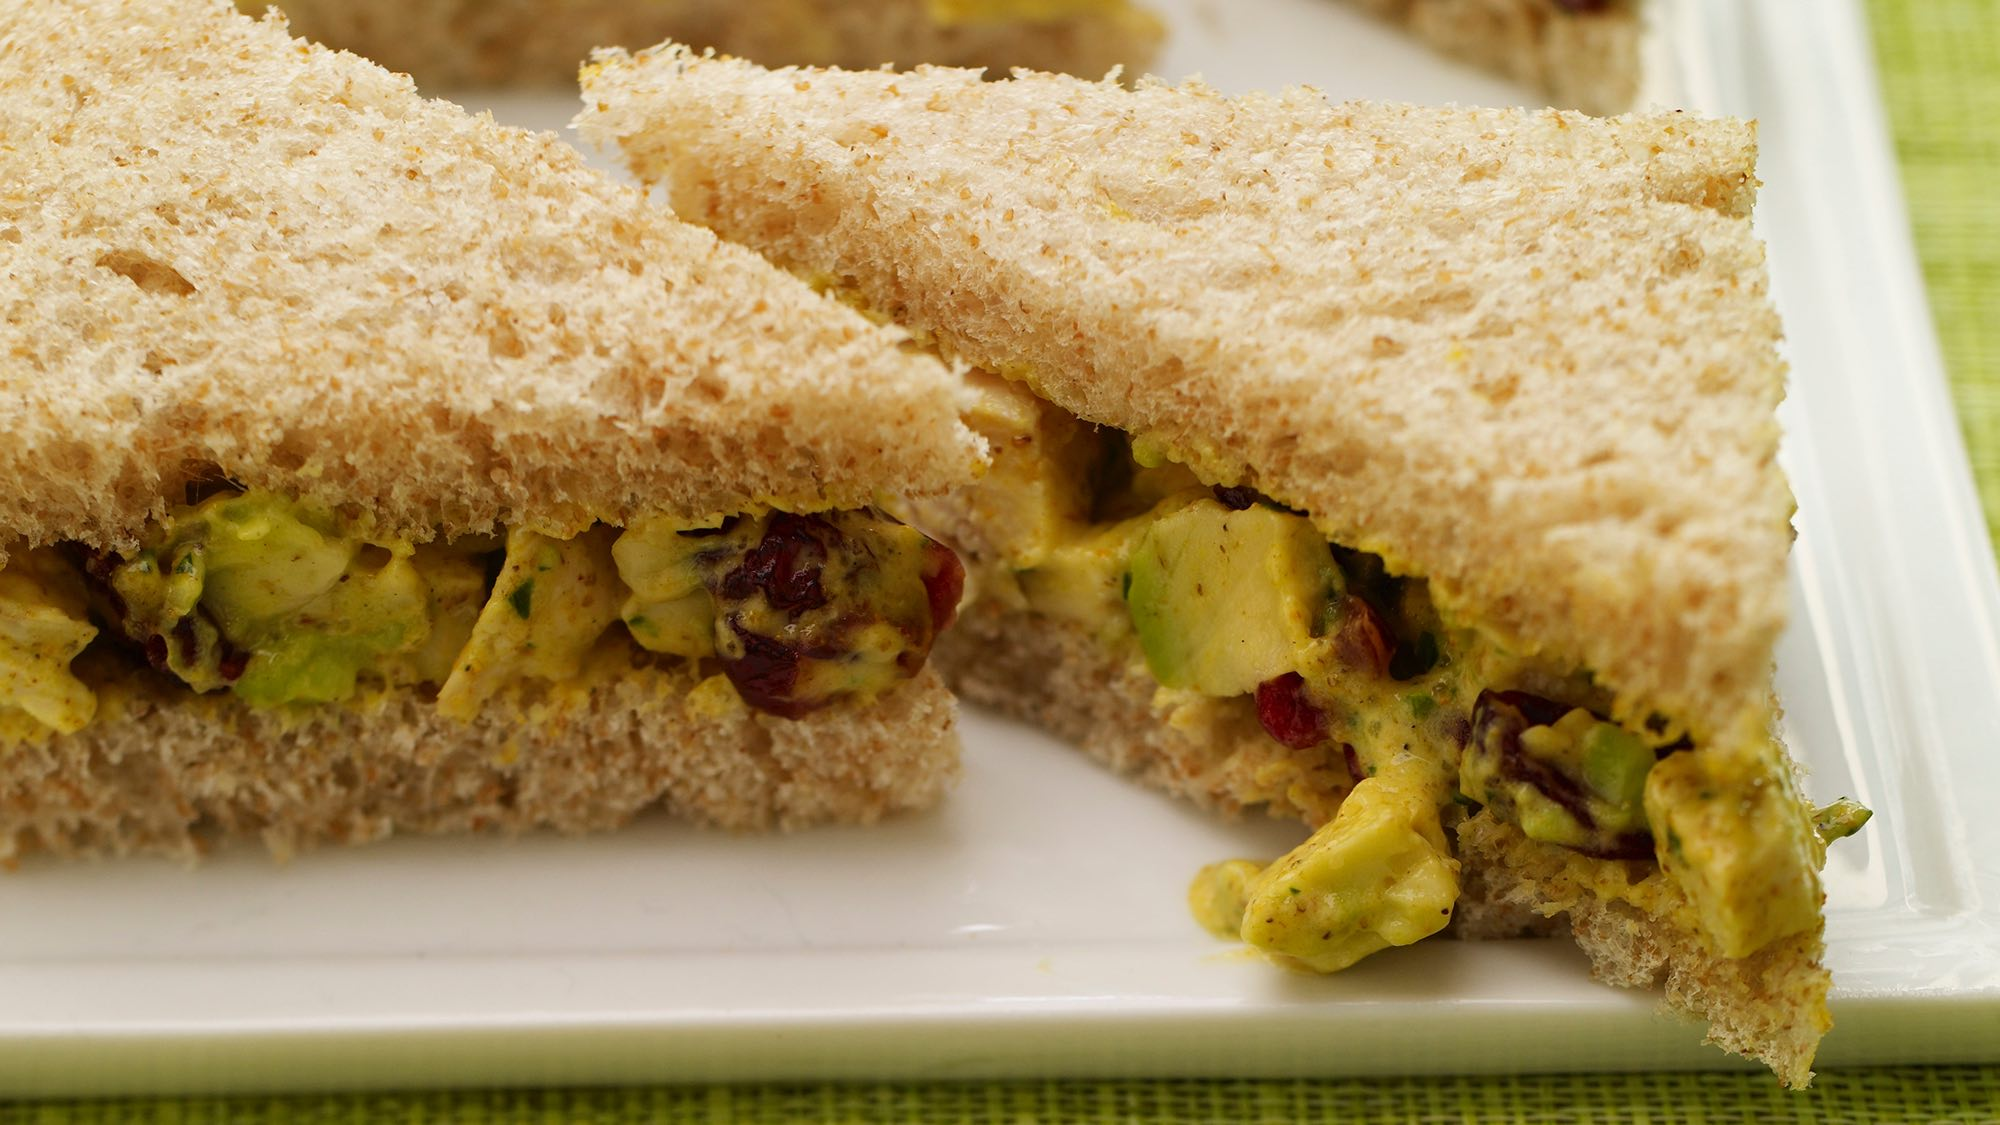 curried-chicken-and-avocado-salad-sandwiches.jpg